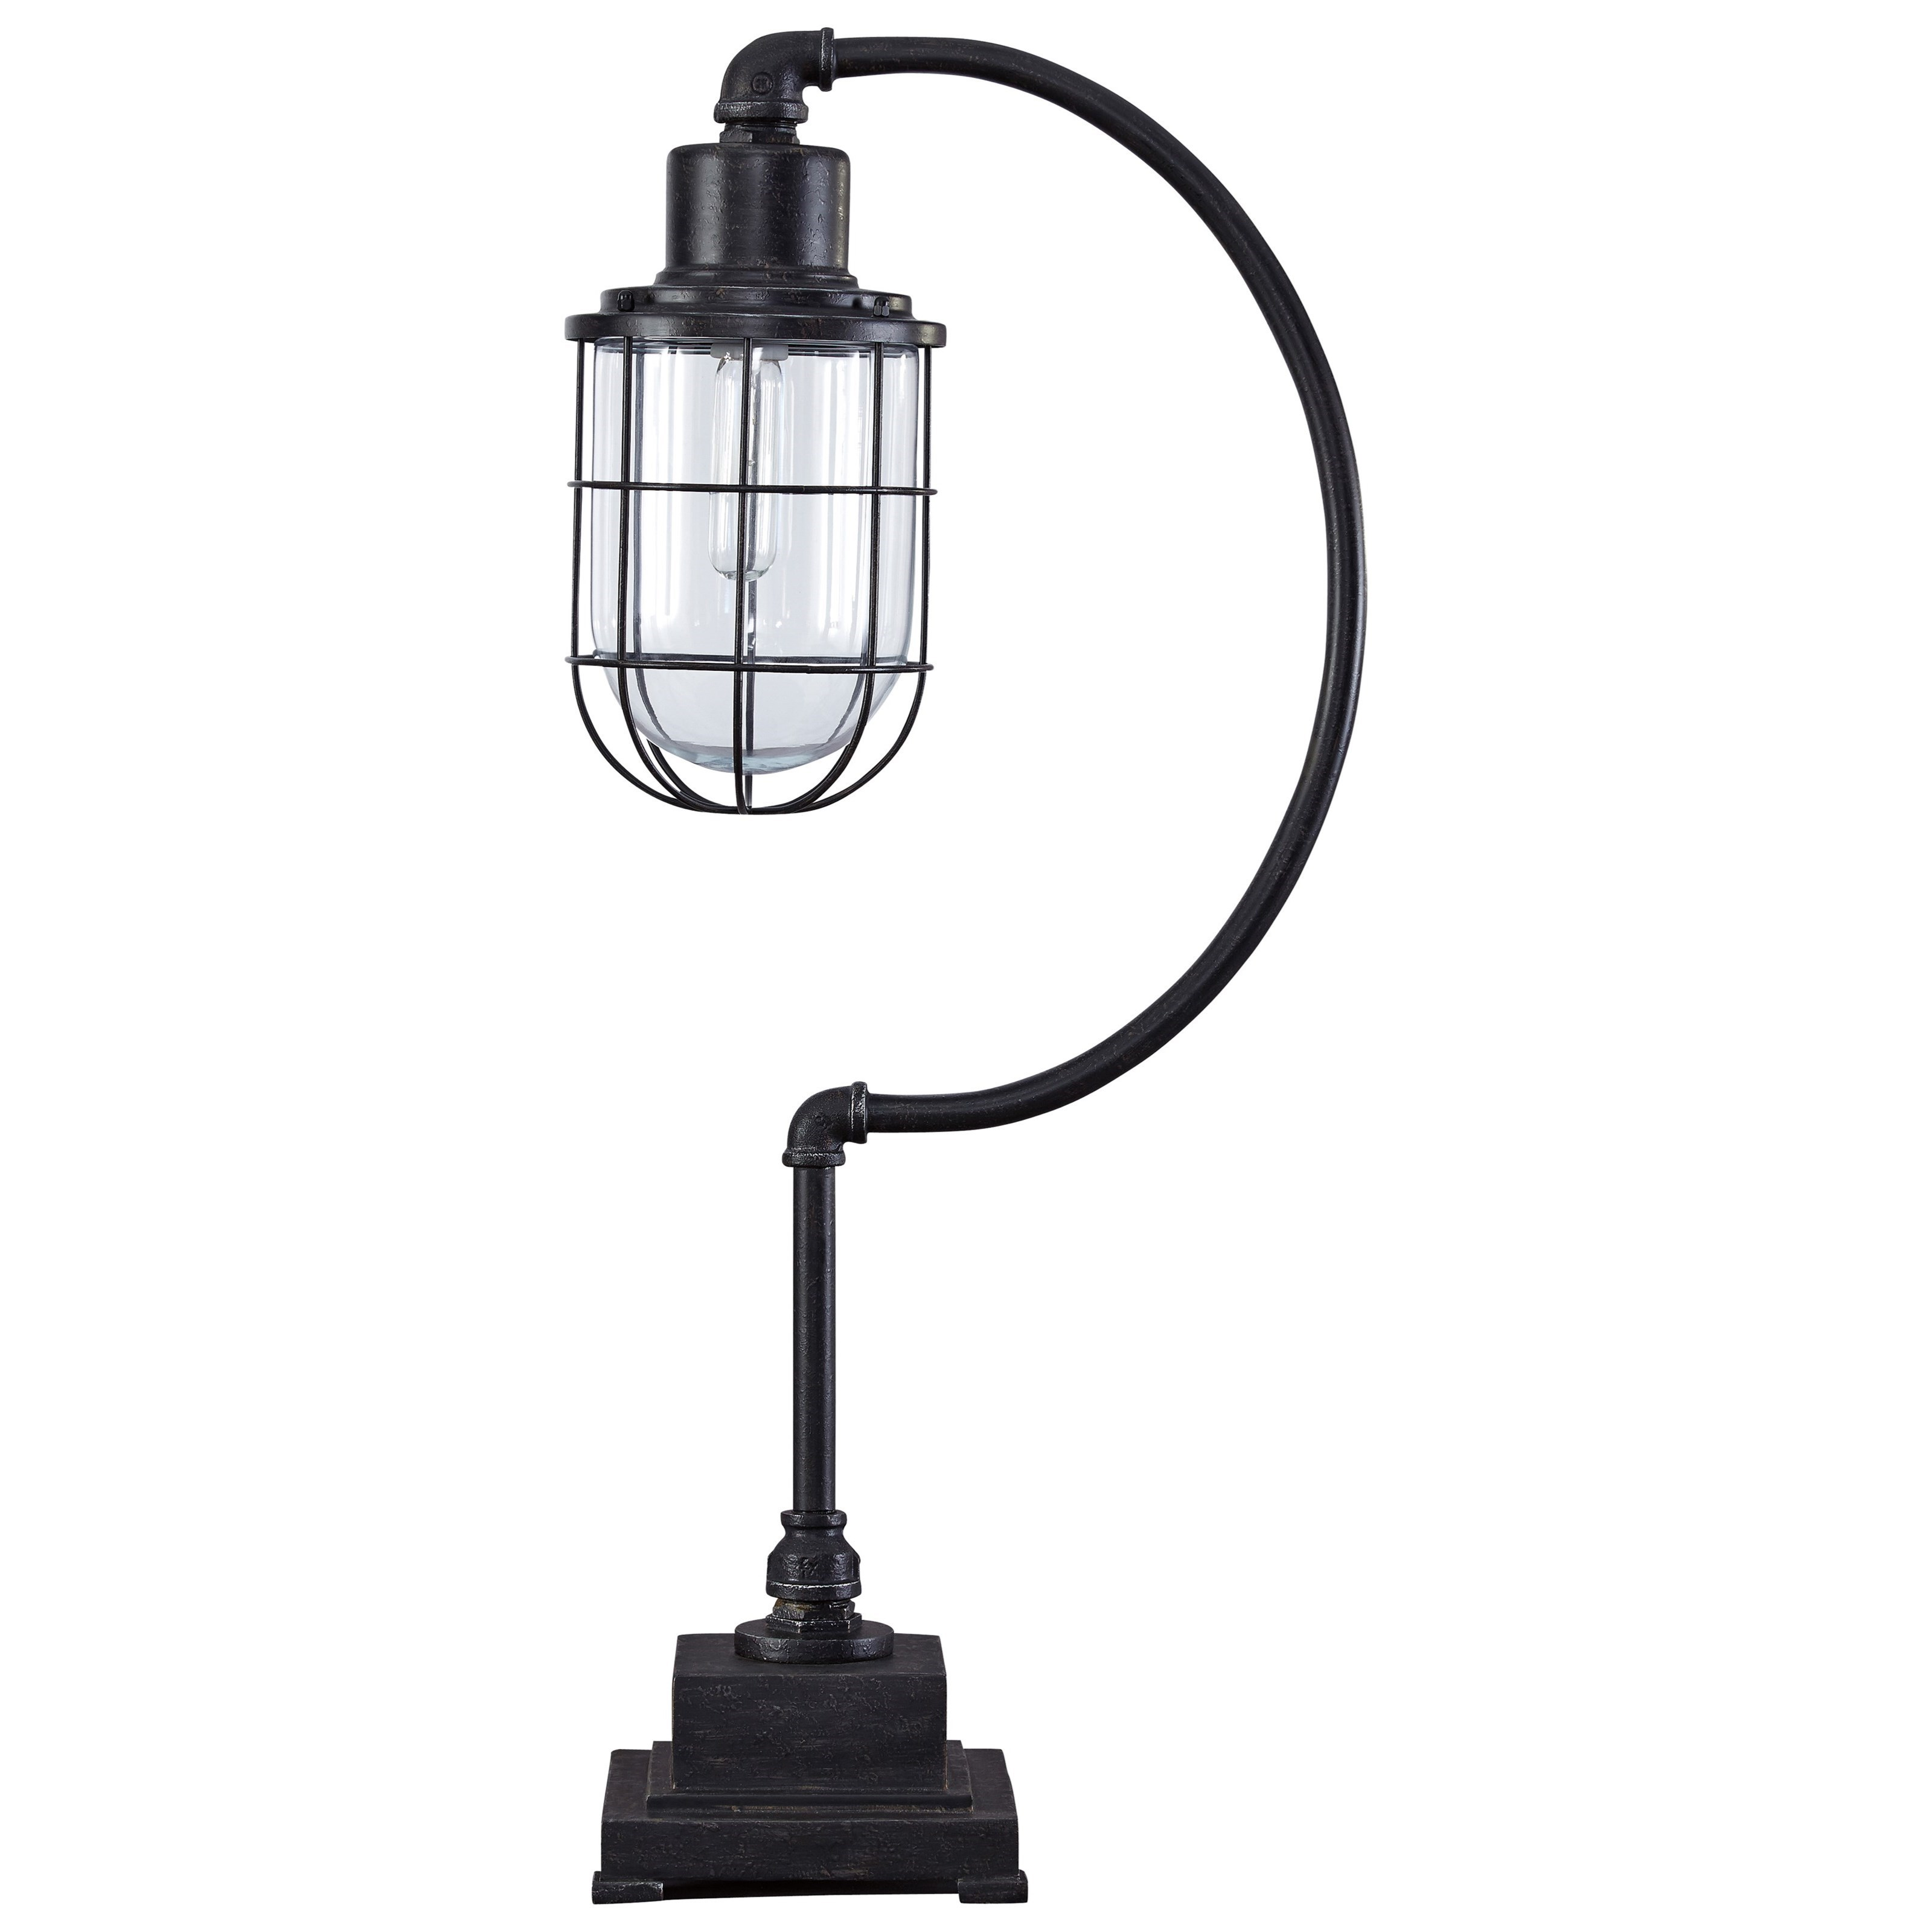 Lamps - Vintage Style Jae Antique Black Metal Desk Lamp by Signature Design by Ashley at Sparks HomeStore